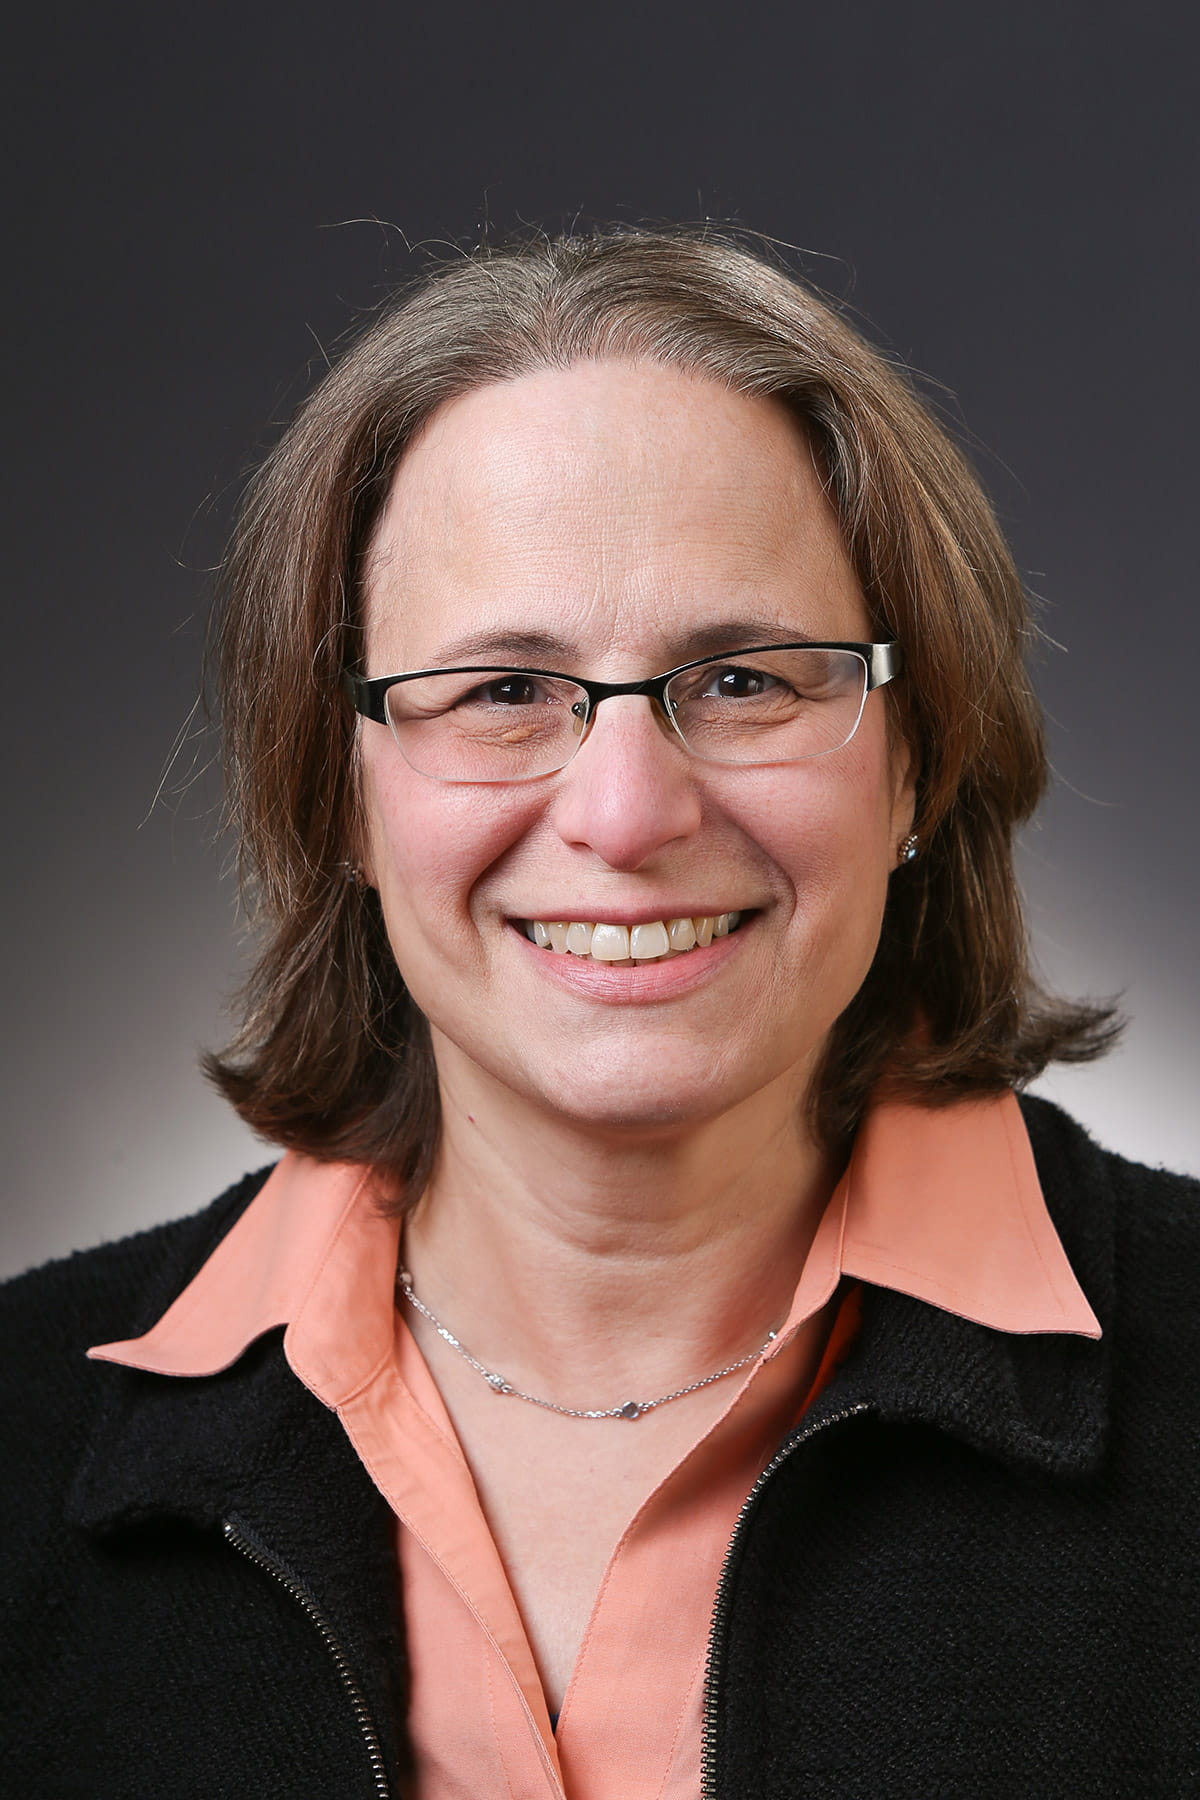 A photo of Amy F. Bailes.